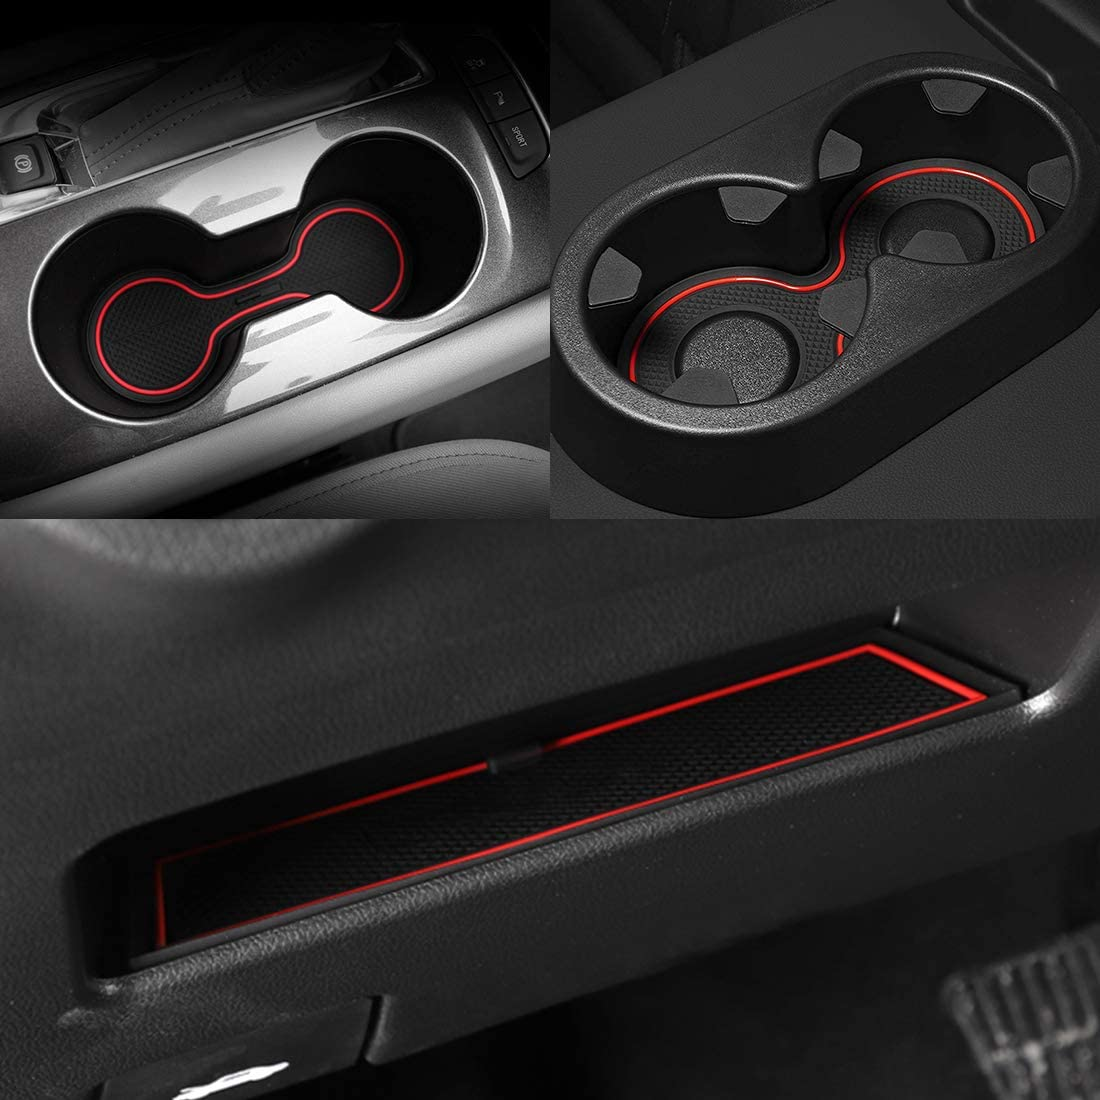 Red Trim Premium Cup Holder Chevy Silverado Cup Mats Anti-dust Silicone Mat for Chevy Silverado 1500 and GMC Sierra 2014-2018 Custom Liner Accessories Console Door Pocket Inserts Mats 31-pc Set